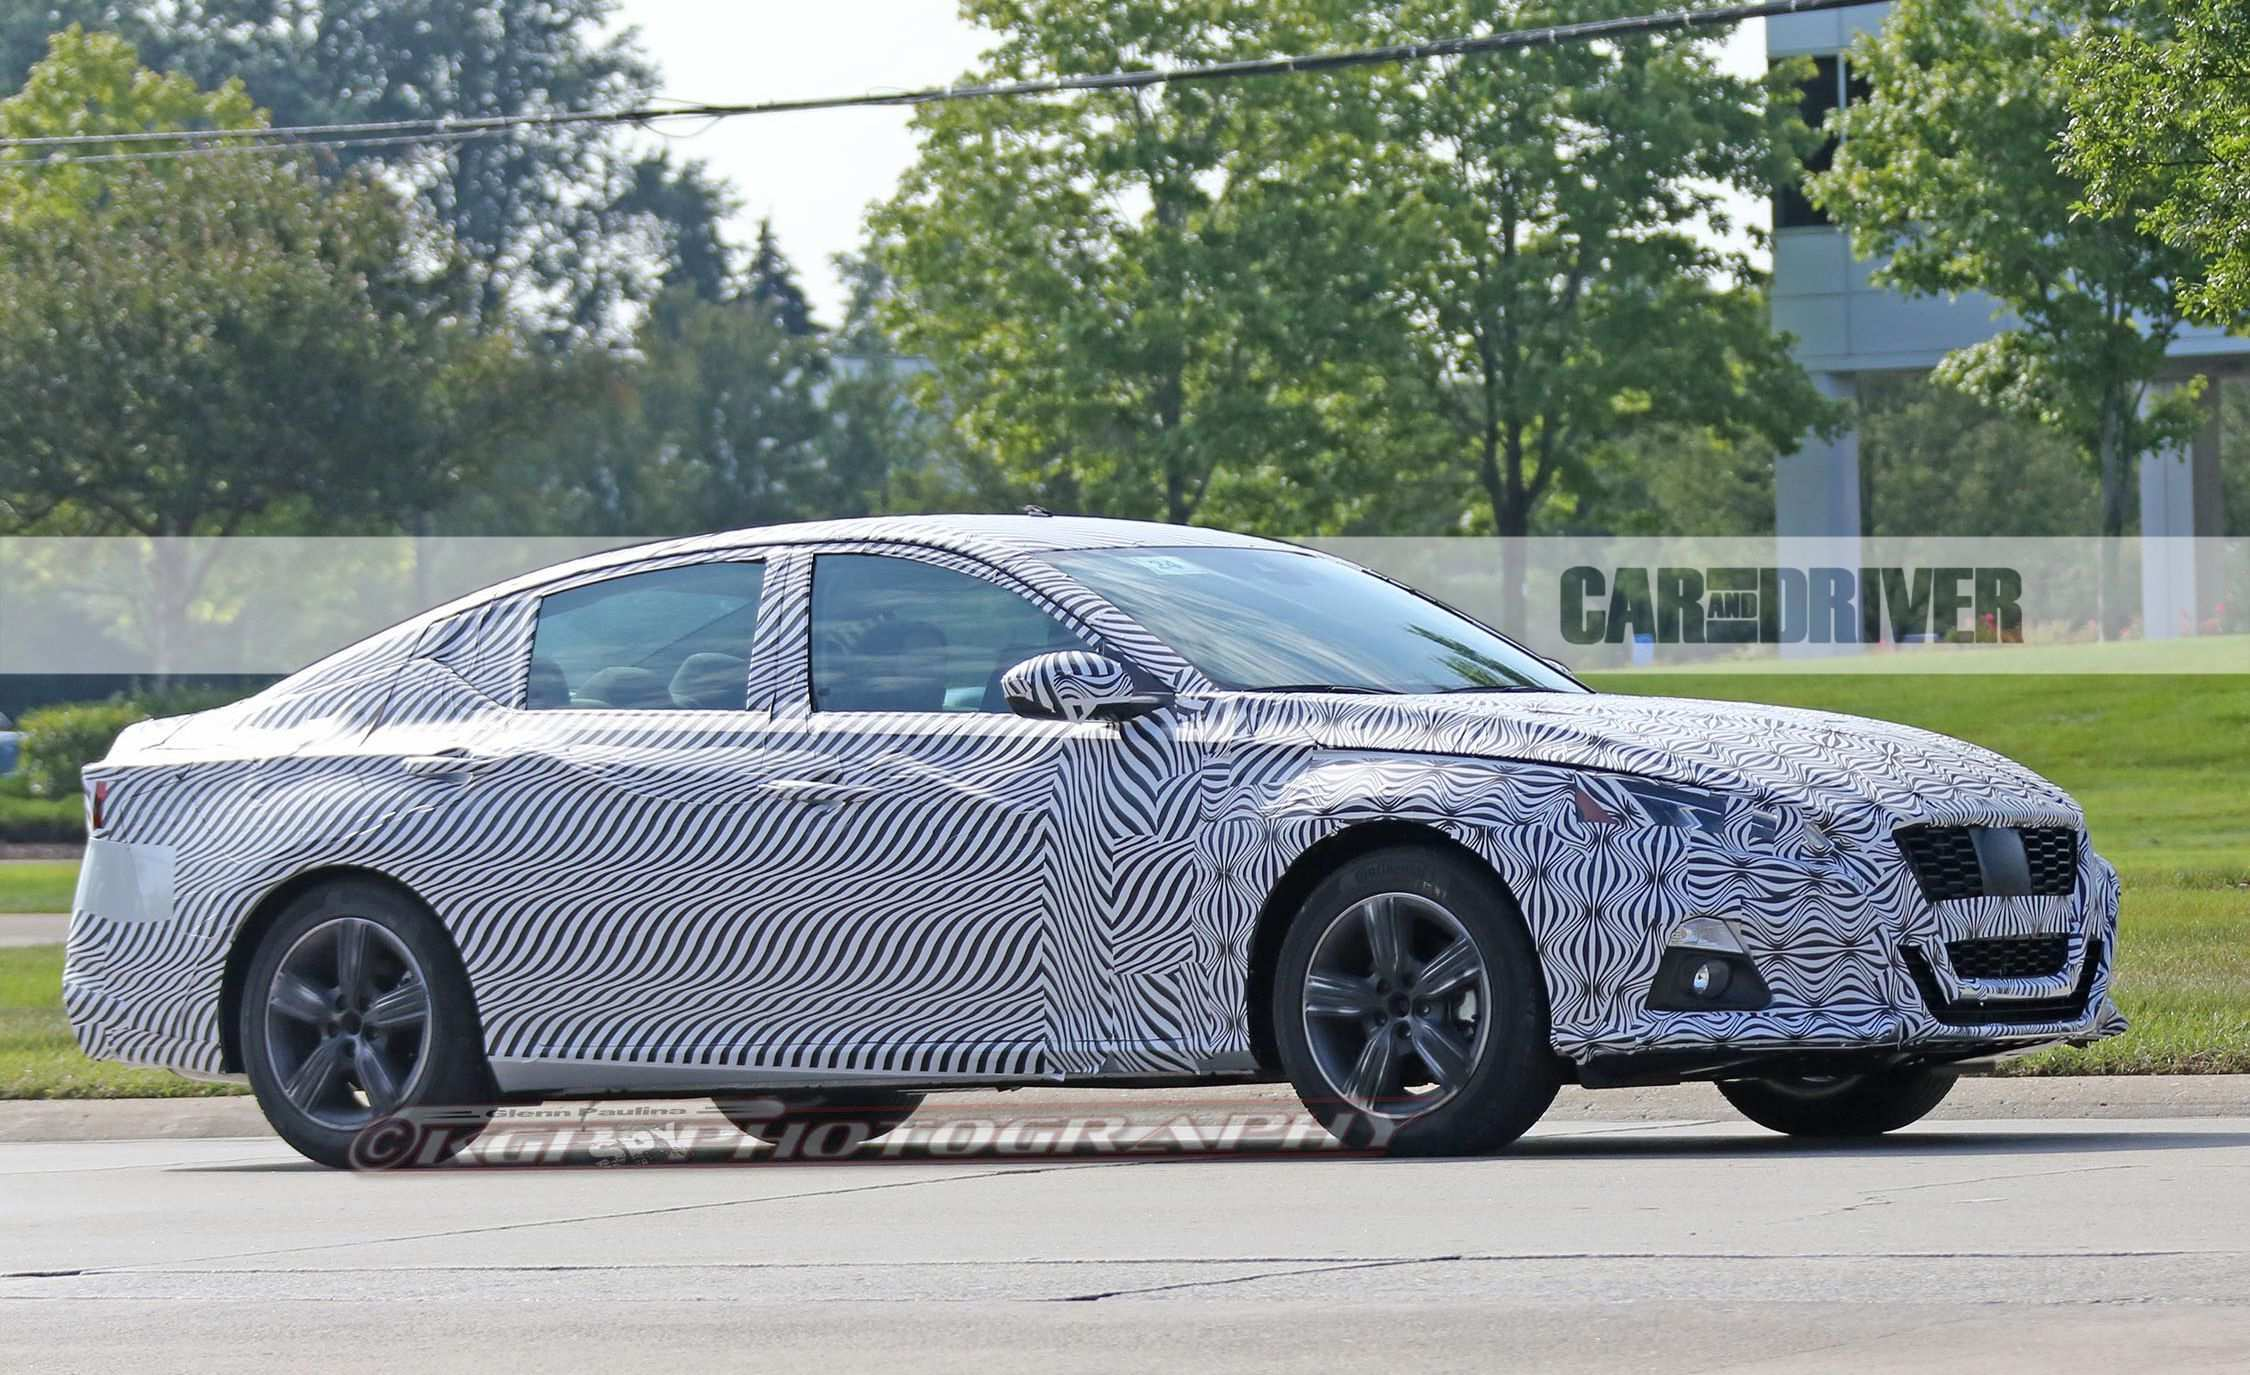 82 All New 2019 Nissan Altima Spy Shots Release with 2019 Nissan Altima Spy Shots